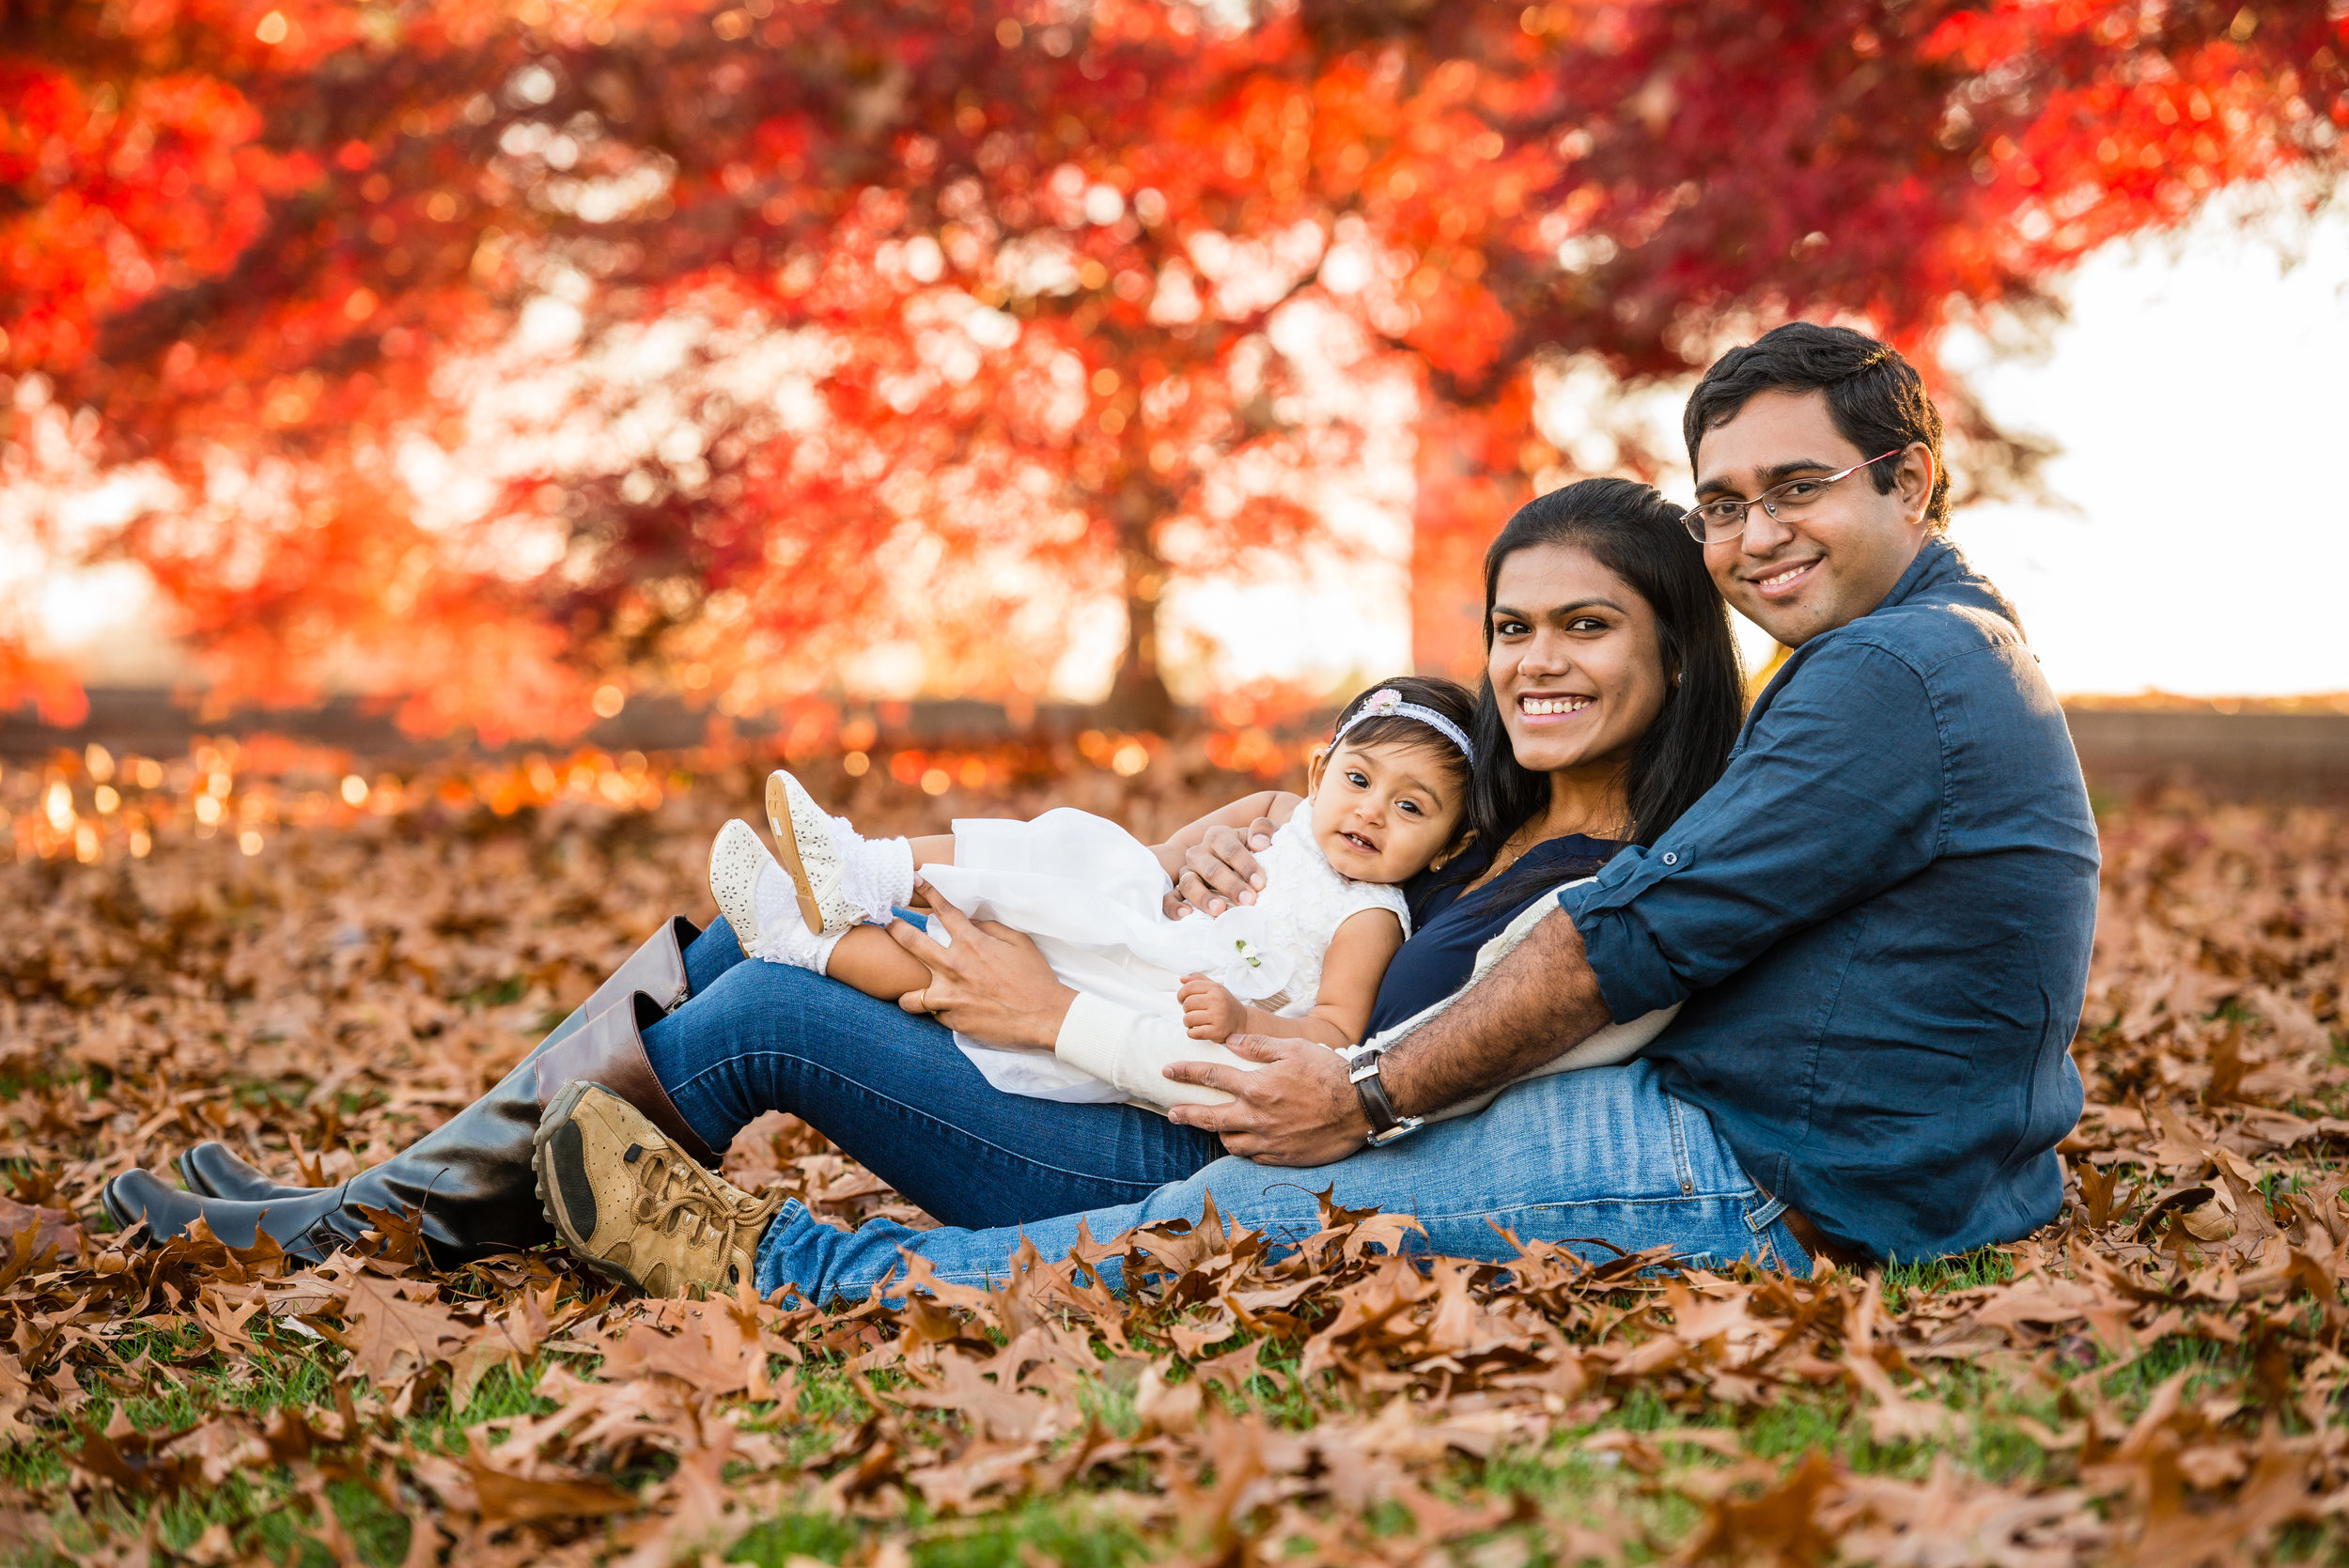 Shernaz-Family-Fall2015-1.jpg